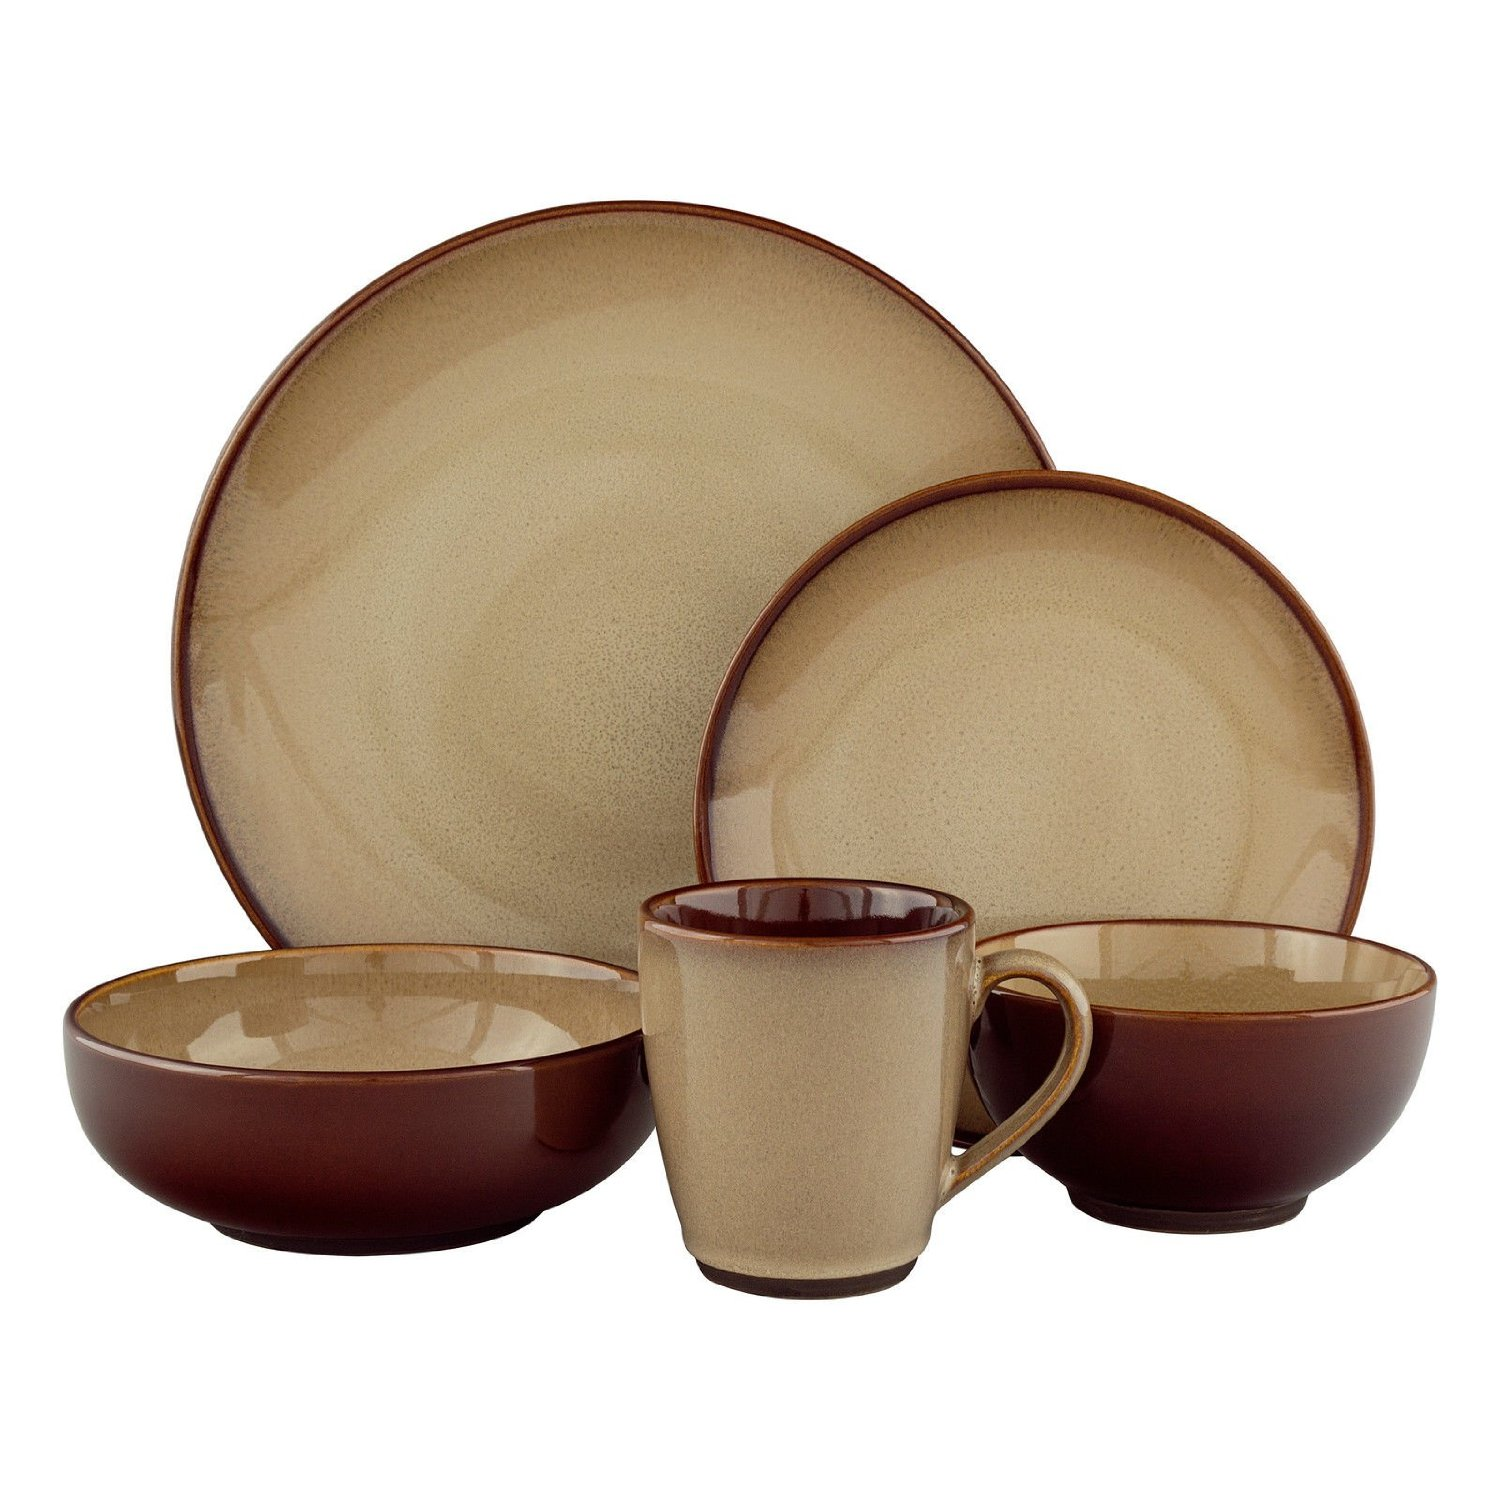 Cool stoneware dishes for dinnerware ideas with stoneware dishes made in usa